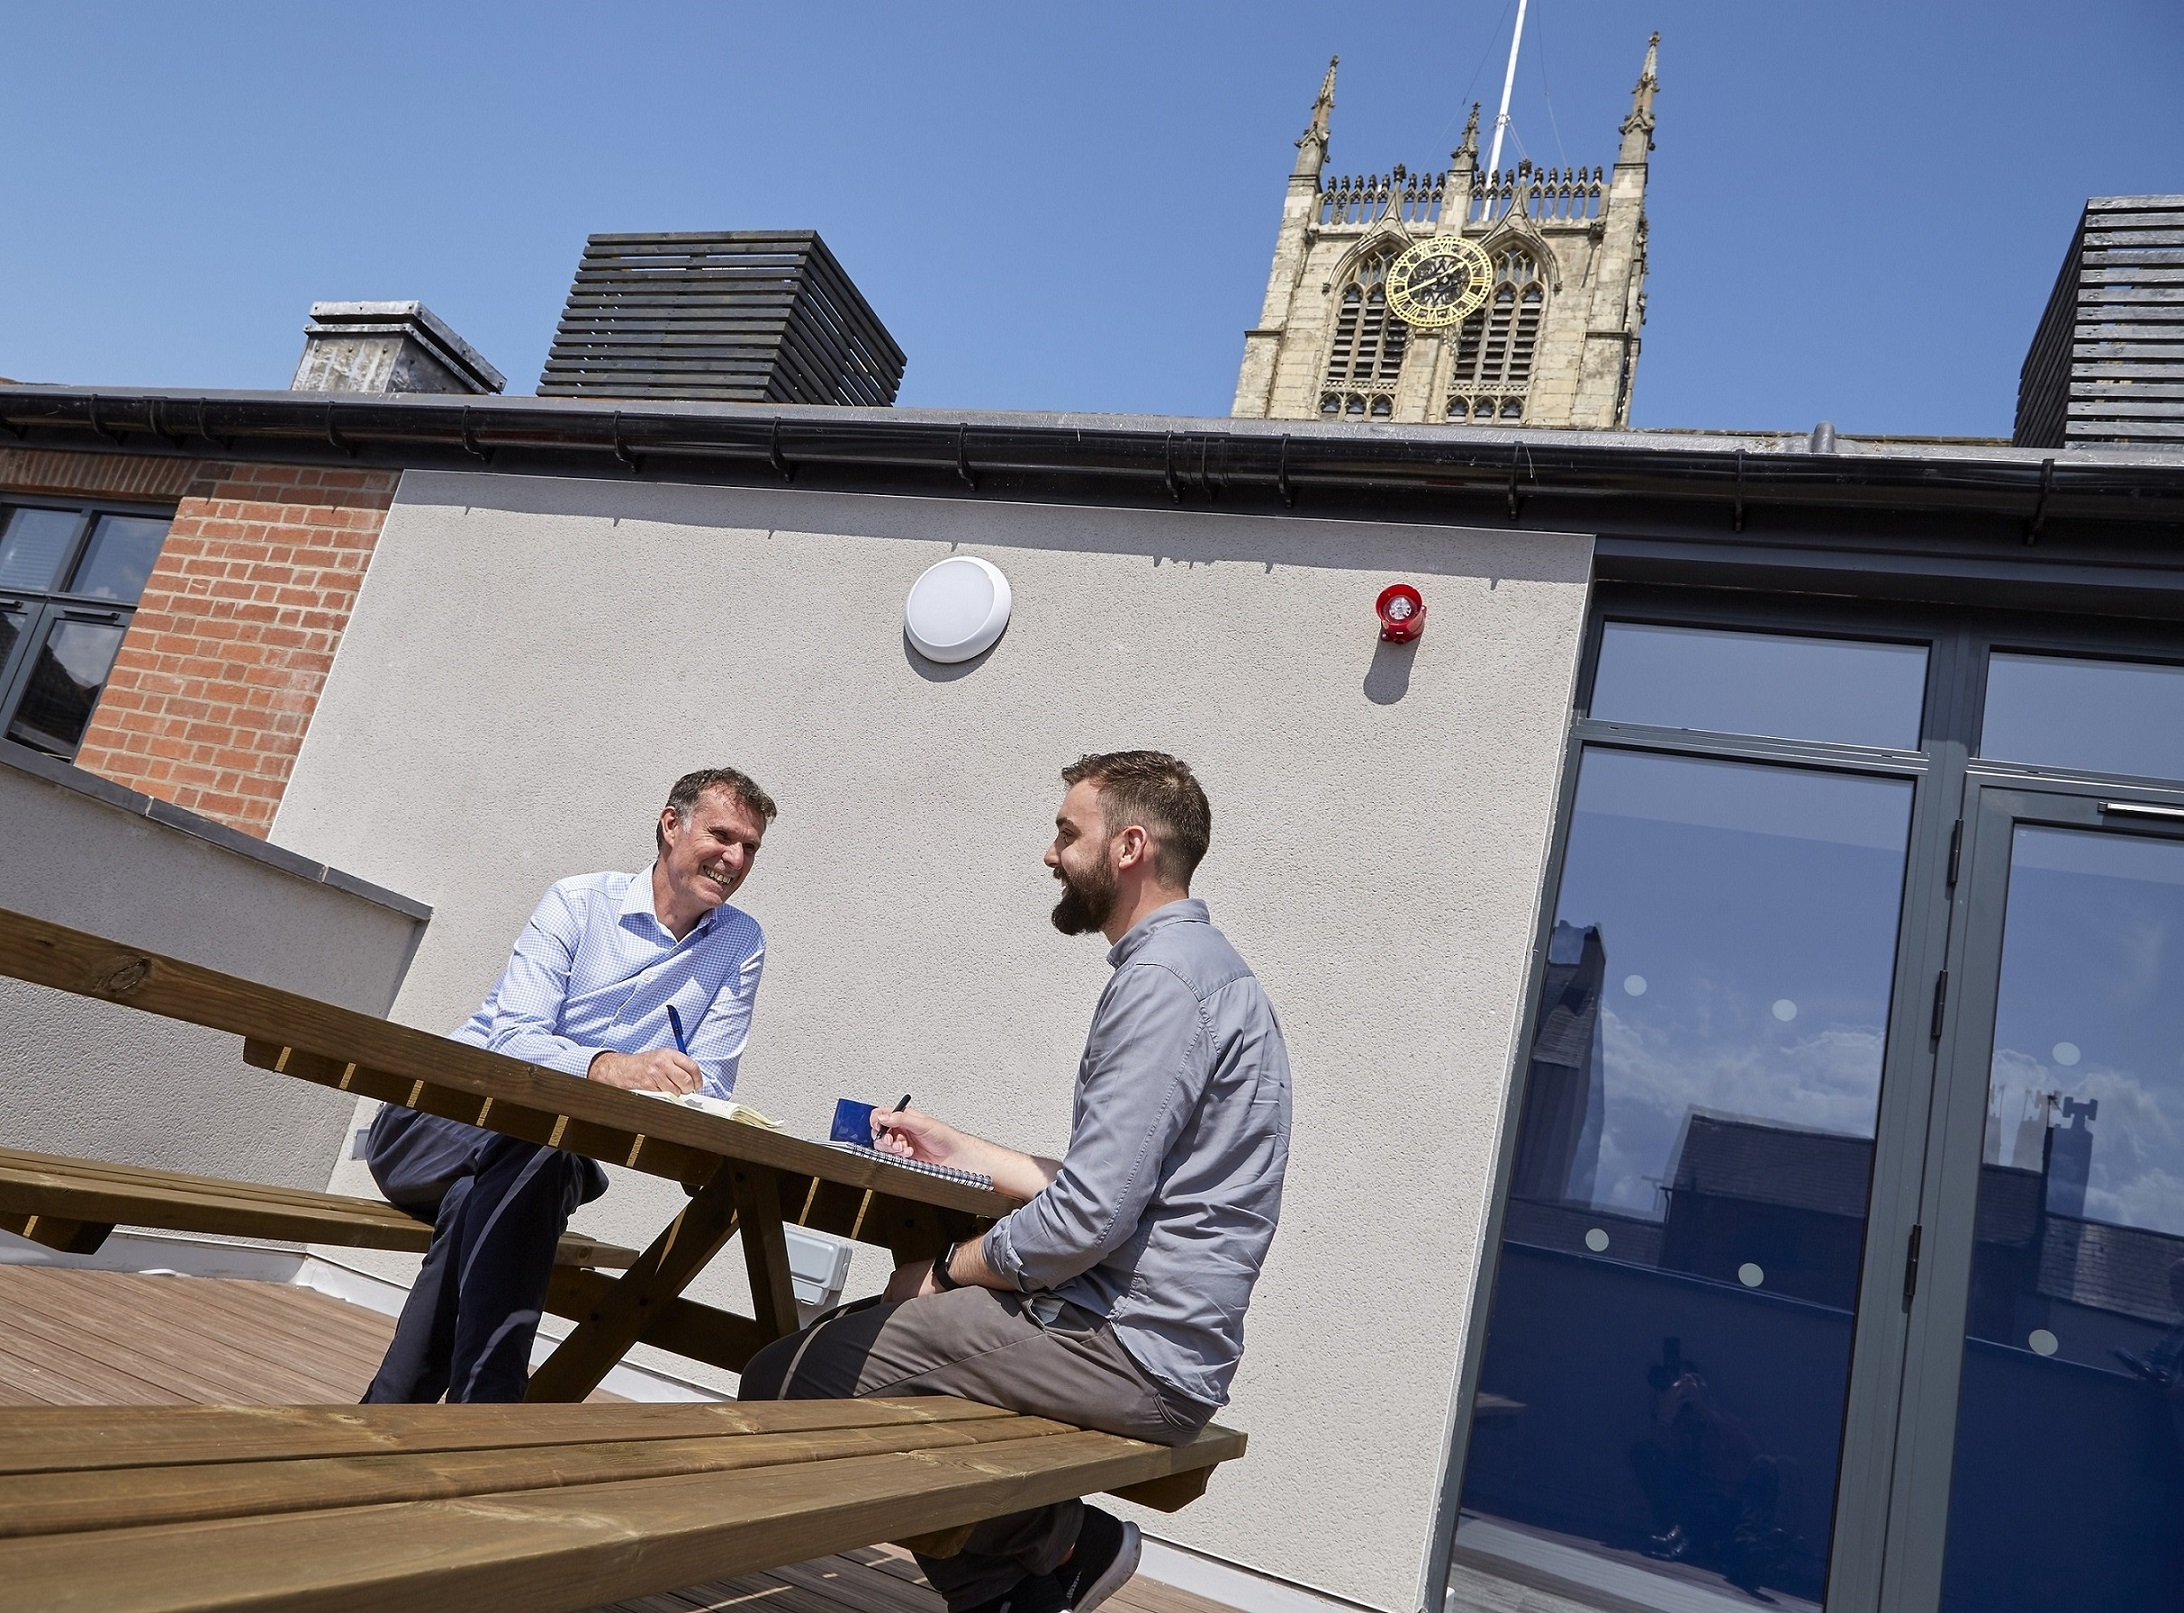 Project Manager Mark Bullivant, left, and Service Delivery Engineer Lewys Jones catch up on the roof terrace of APD's offices in the shadow Hull Minster.